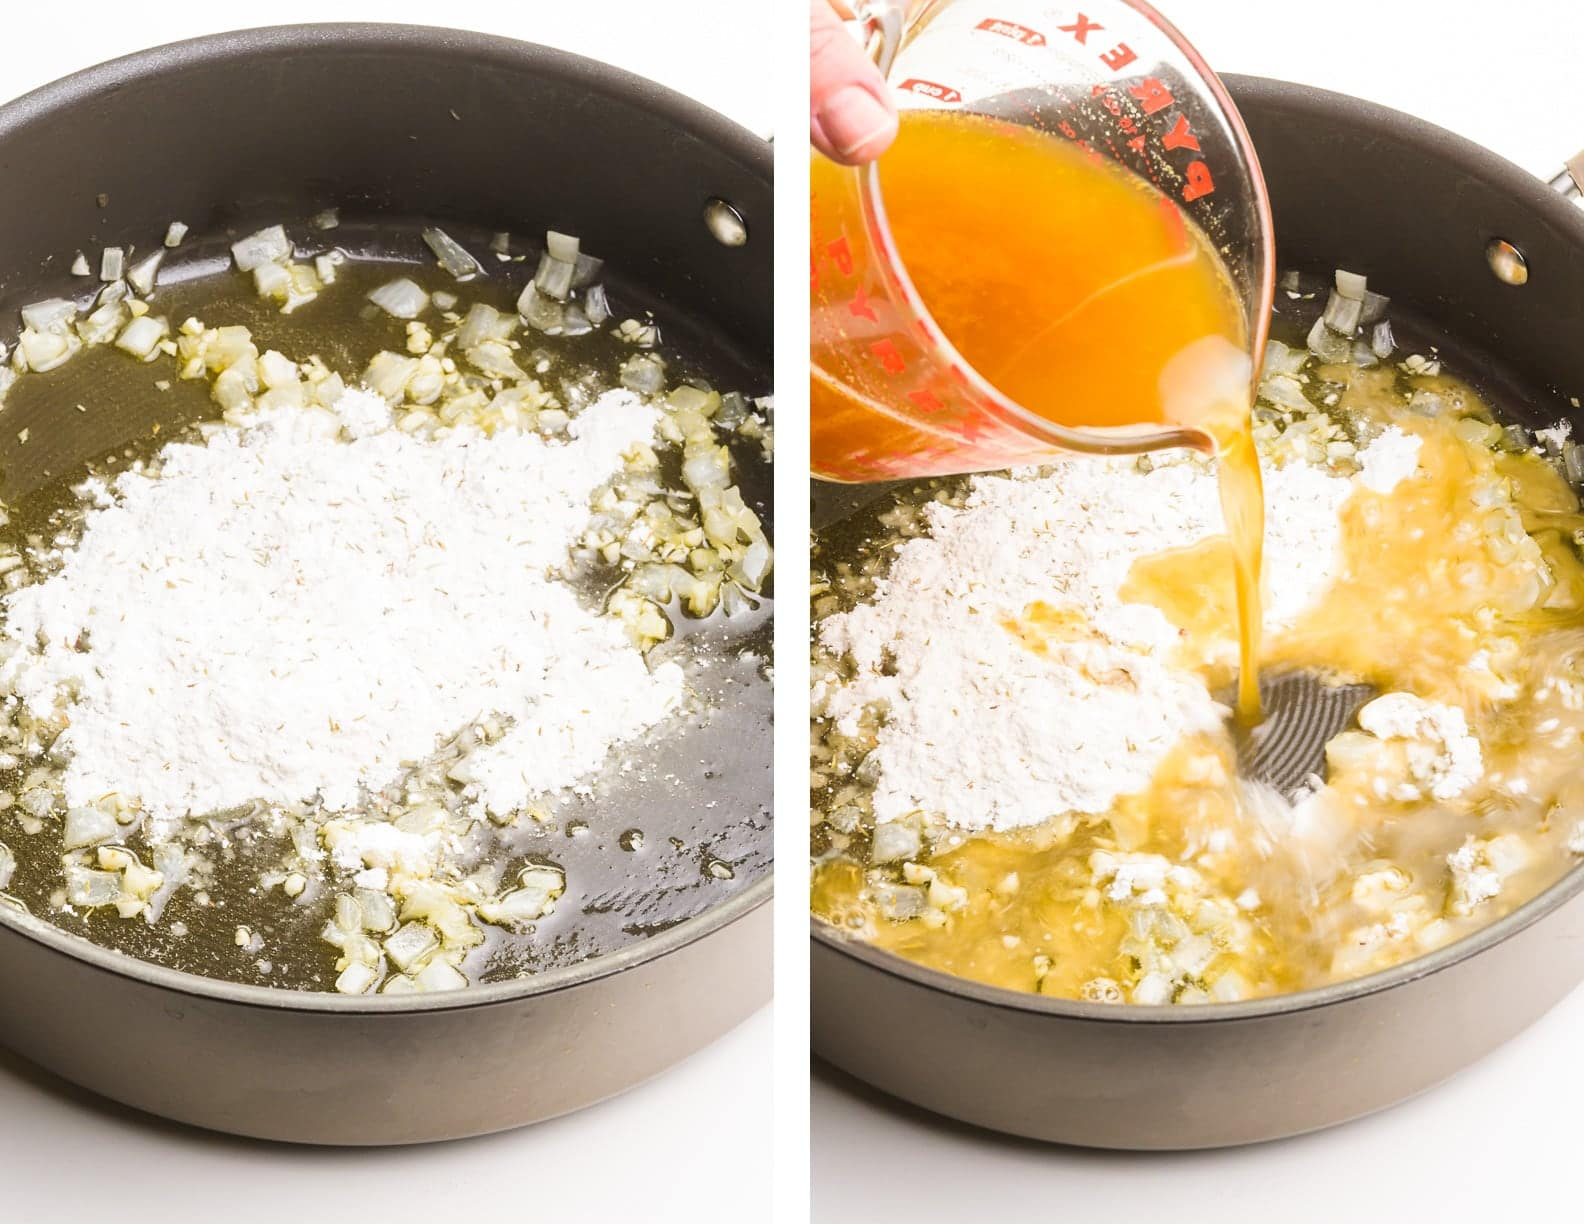 A collage of photos shows flour in a skillet with oil and cooked onions on the left. Broth is being poured into that mixture on the right.